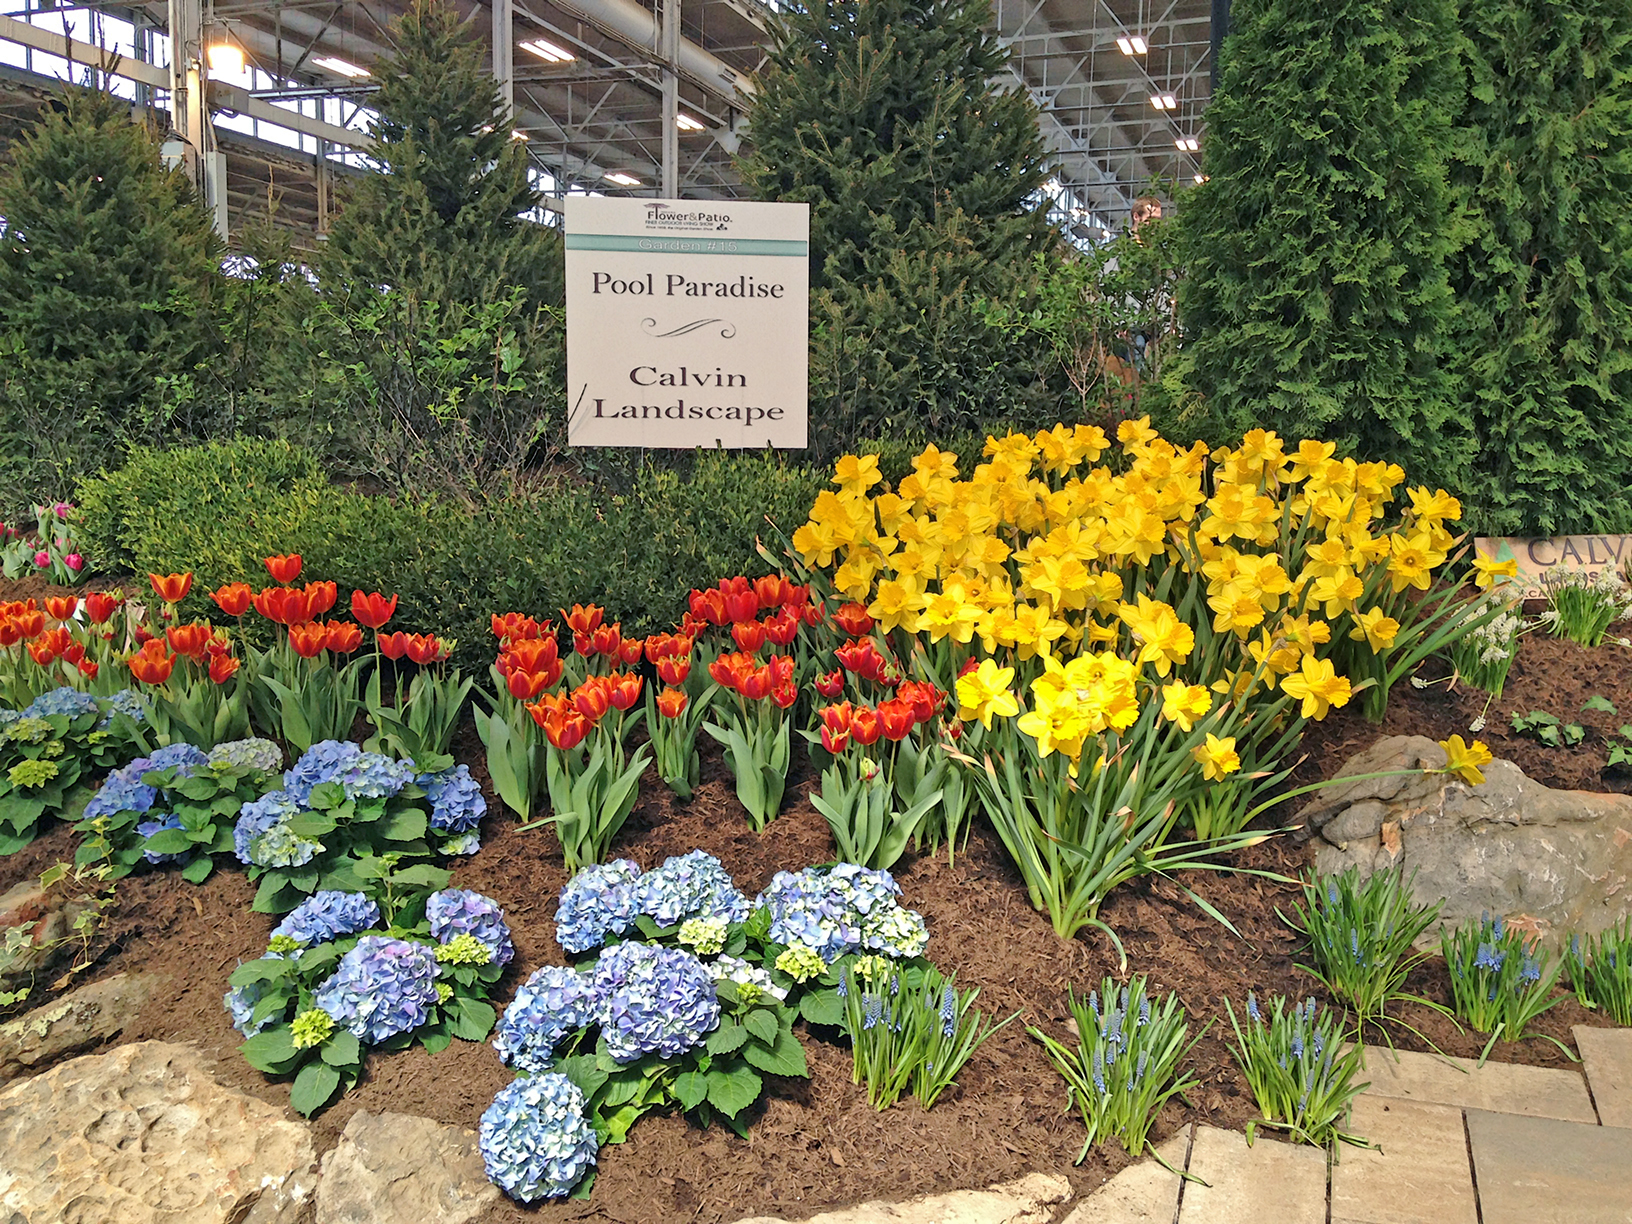 ... Spring Flowers And Landscape Display